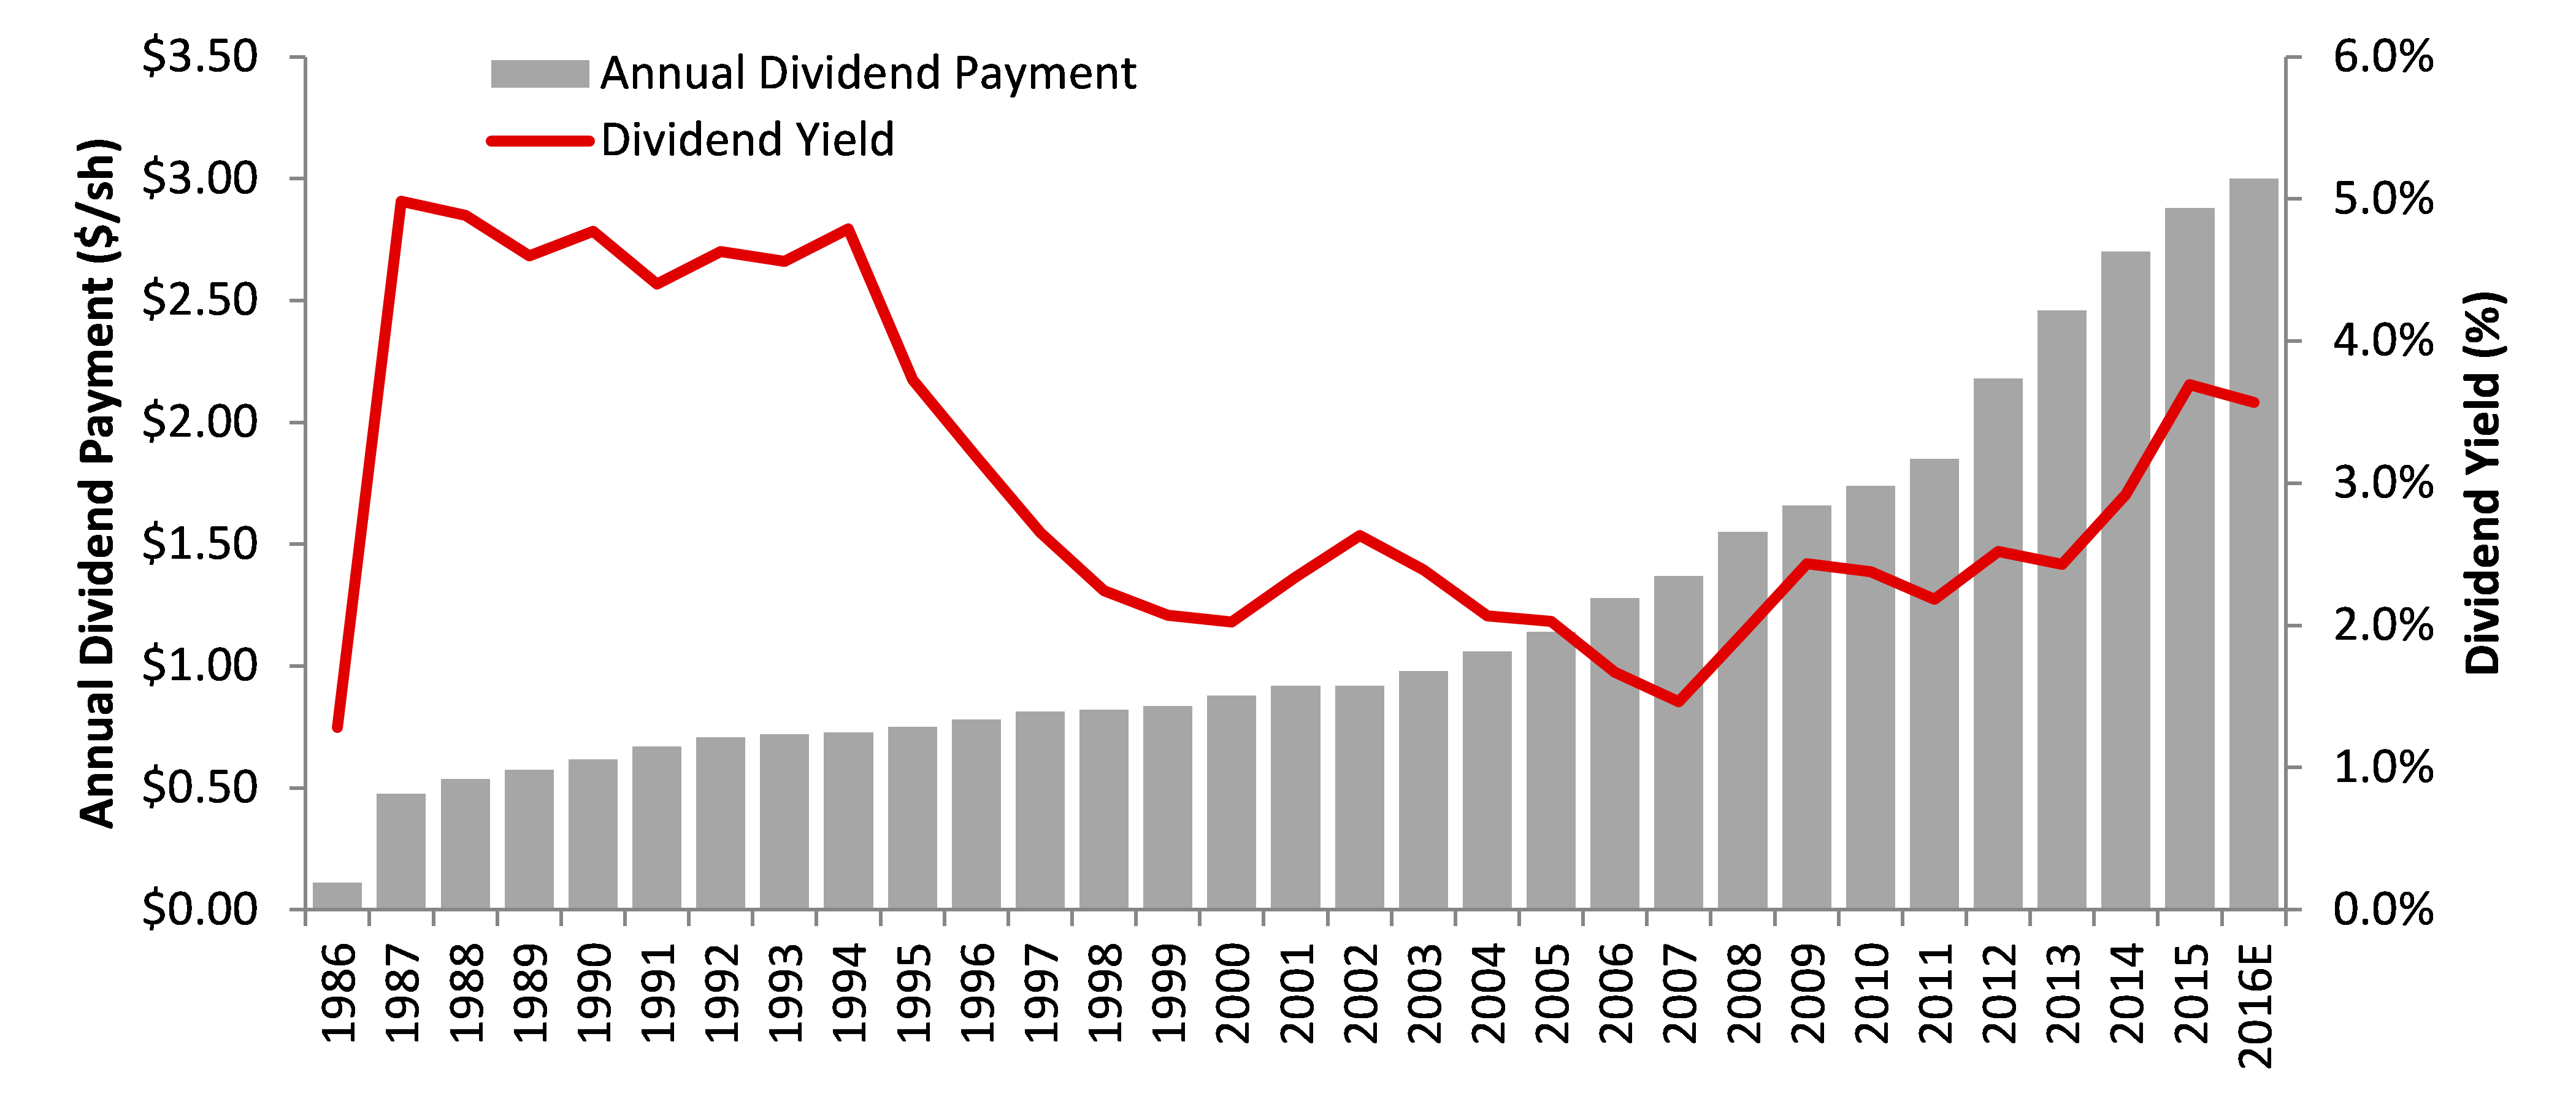 Exxon Mobil Dividend History